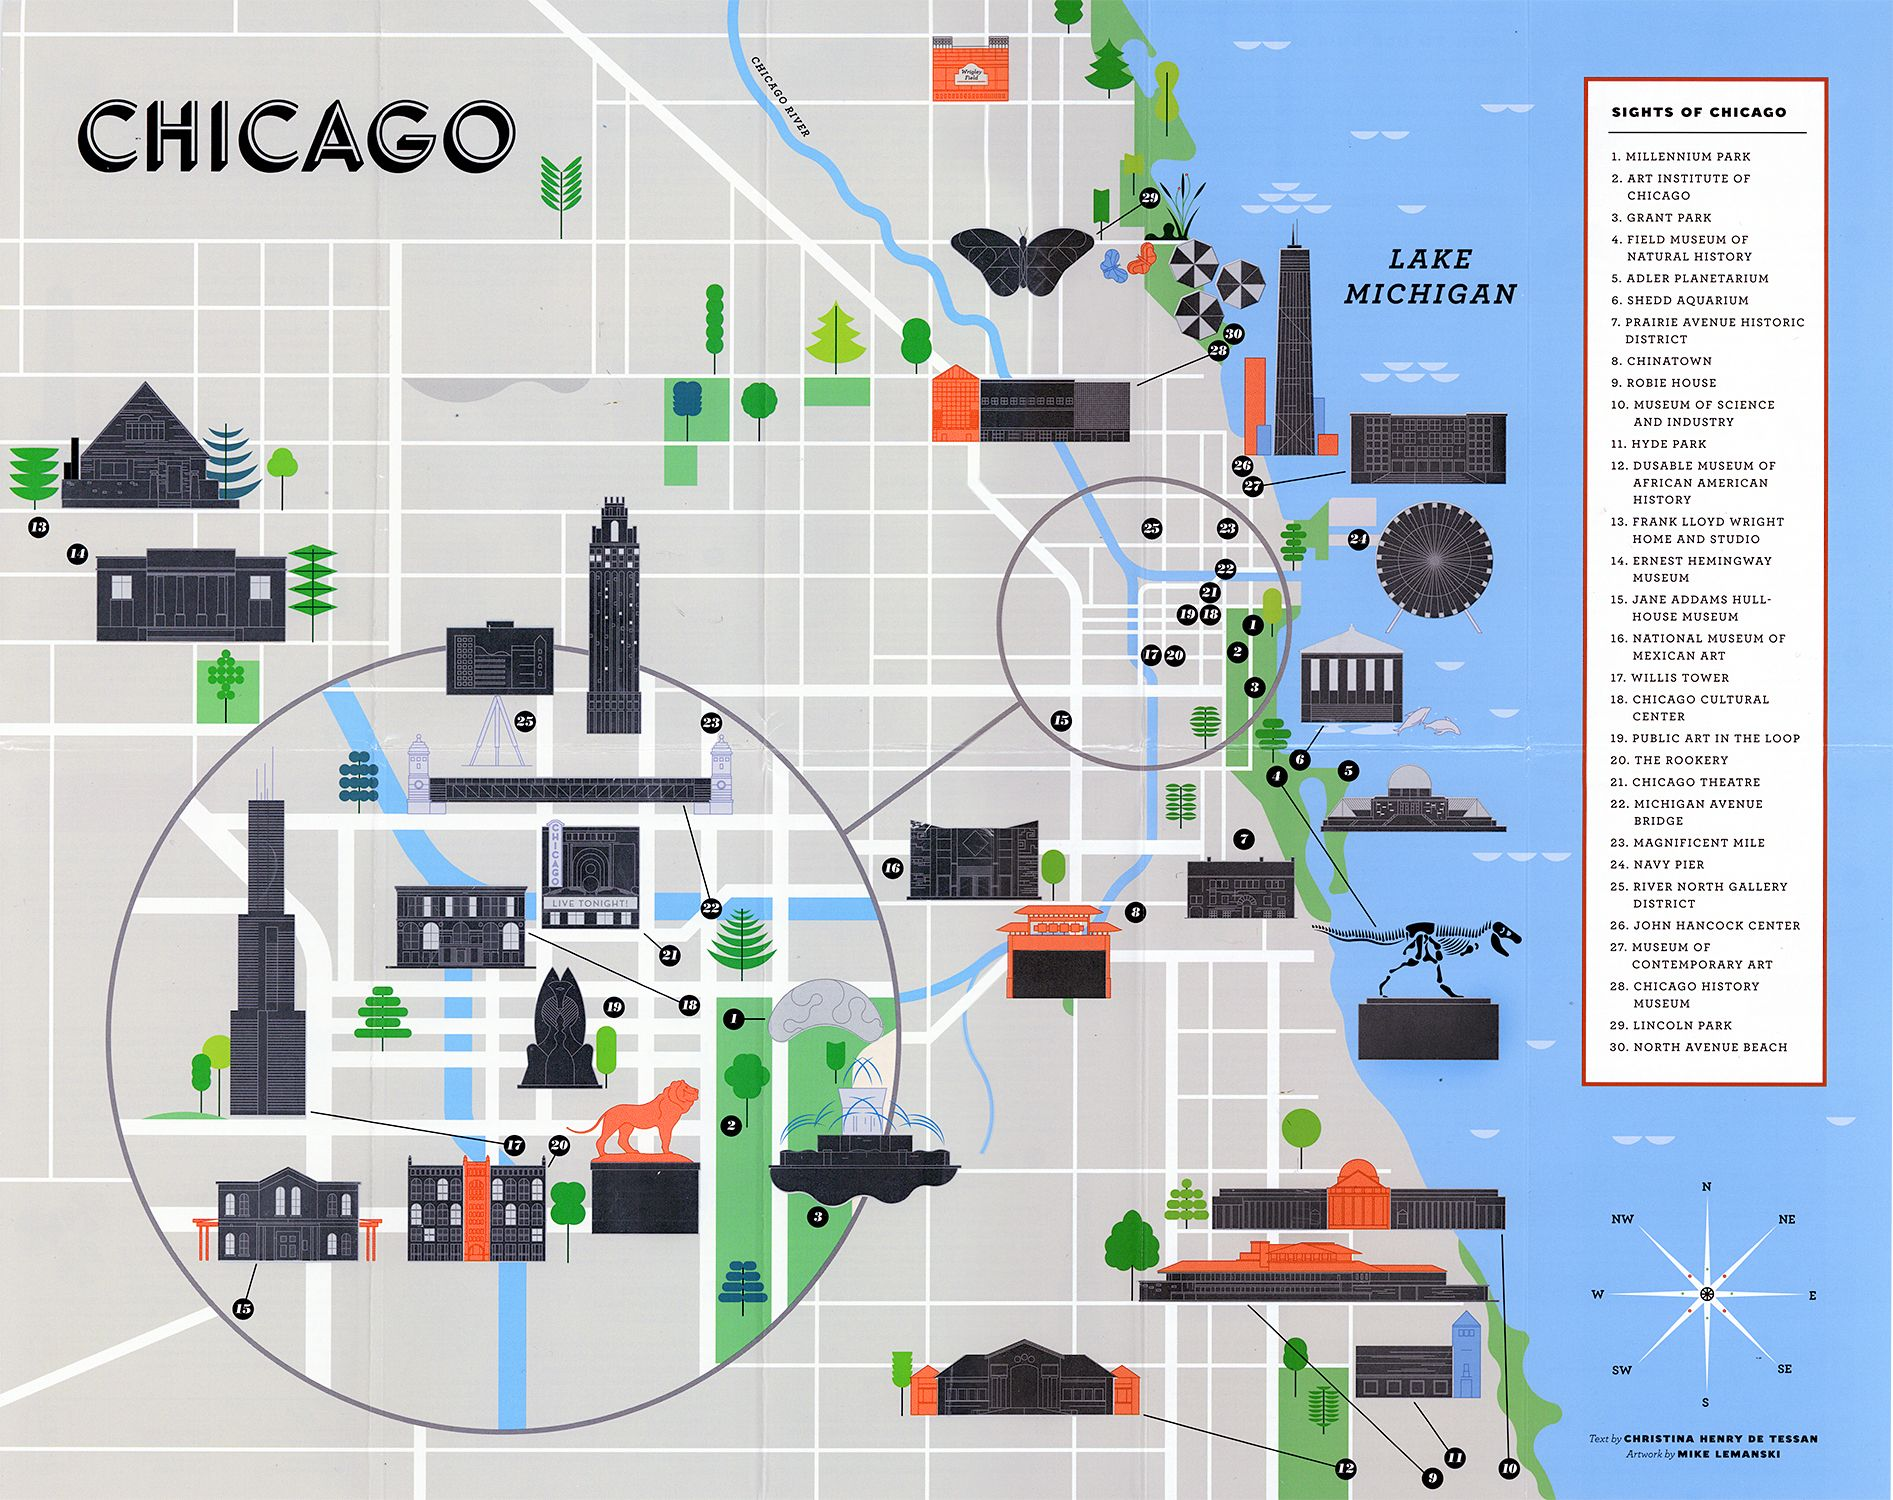 Chicago landmarks map | Maps | Chicago map, Map, Chicago